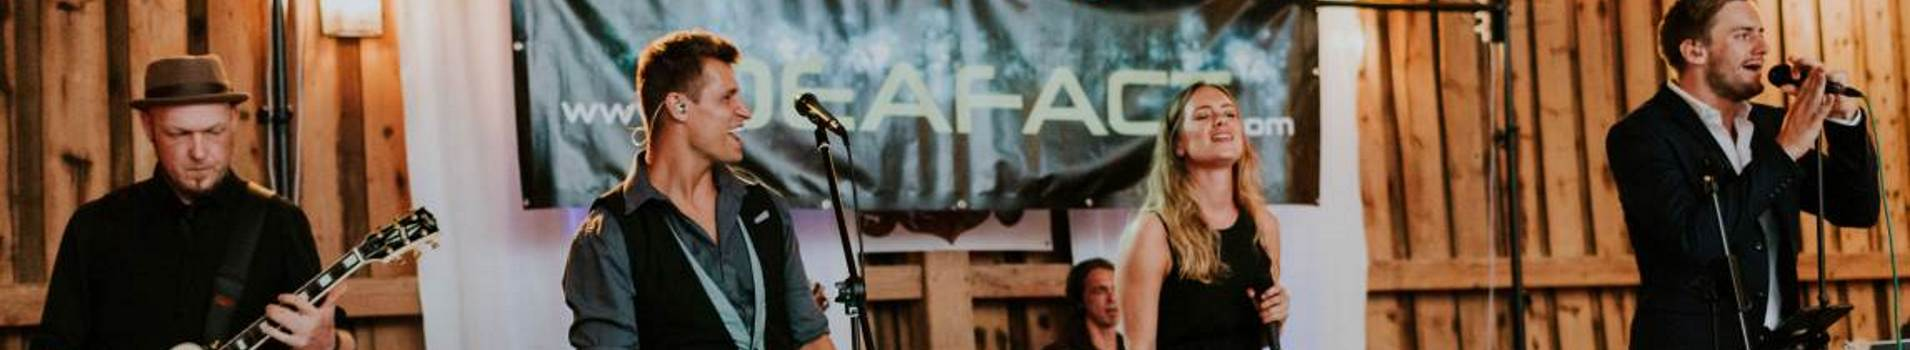 Deafact Shows Dates Termine